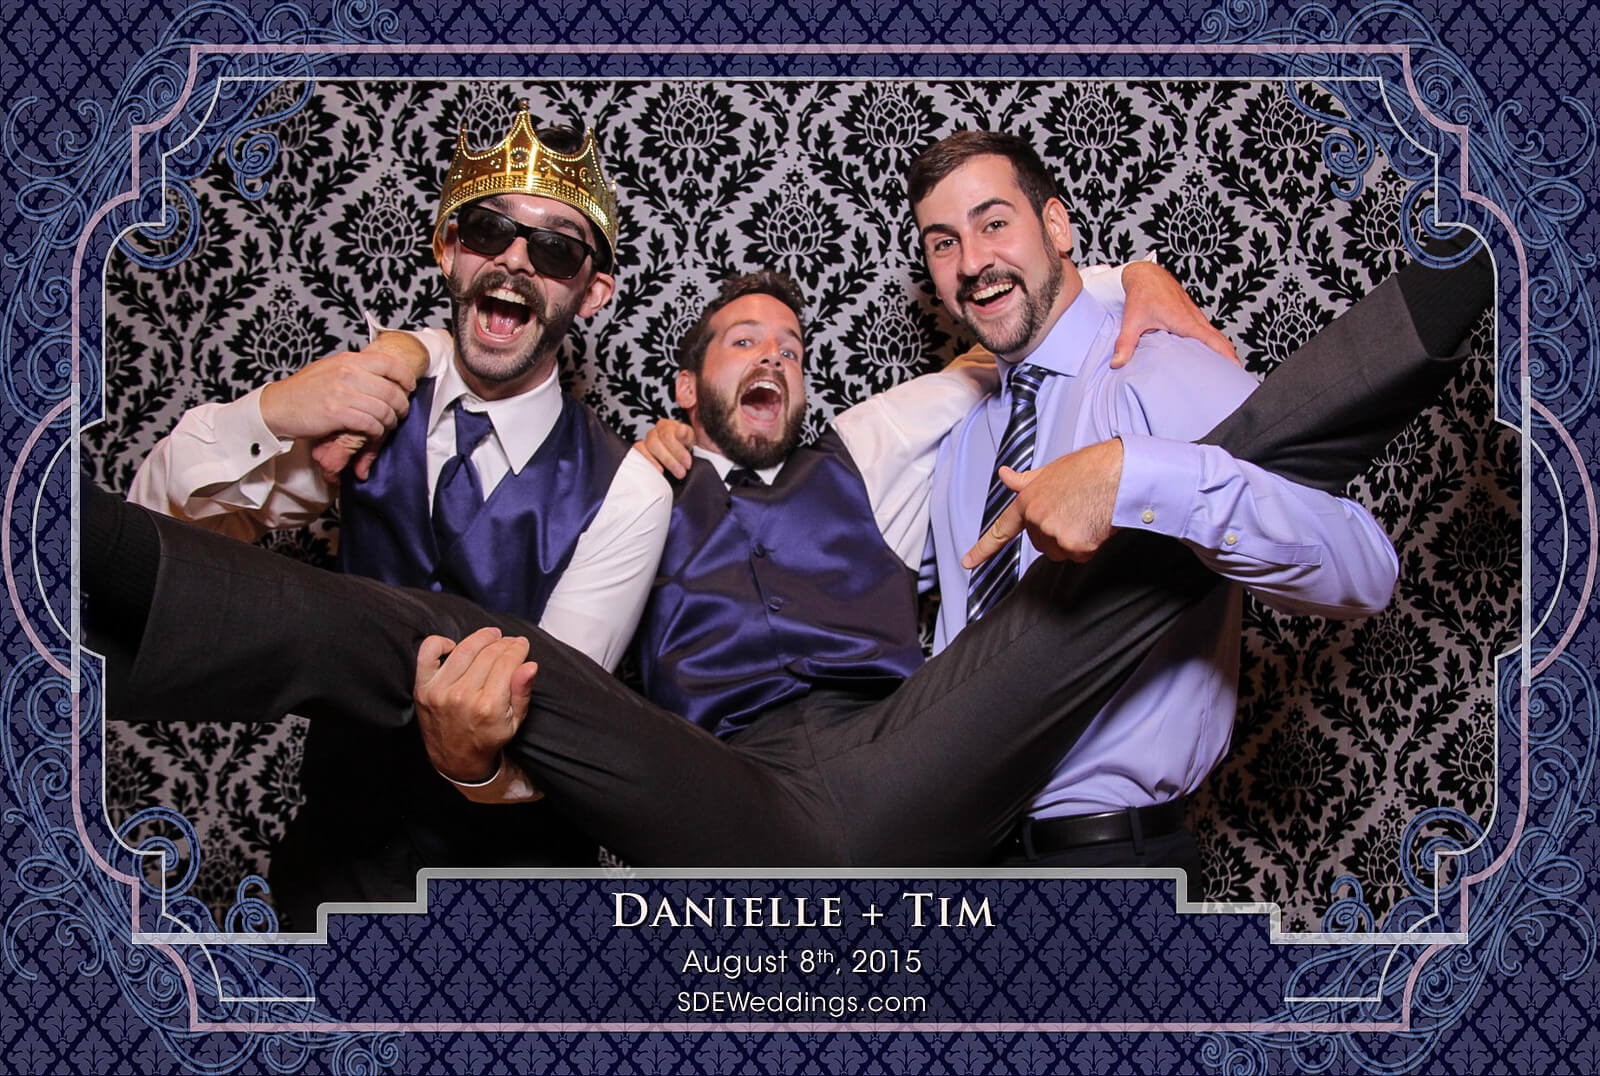 Toronto Old Mill Inn Wedding Photo Booth Rental 10